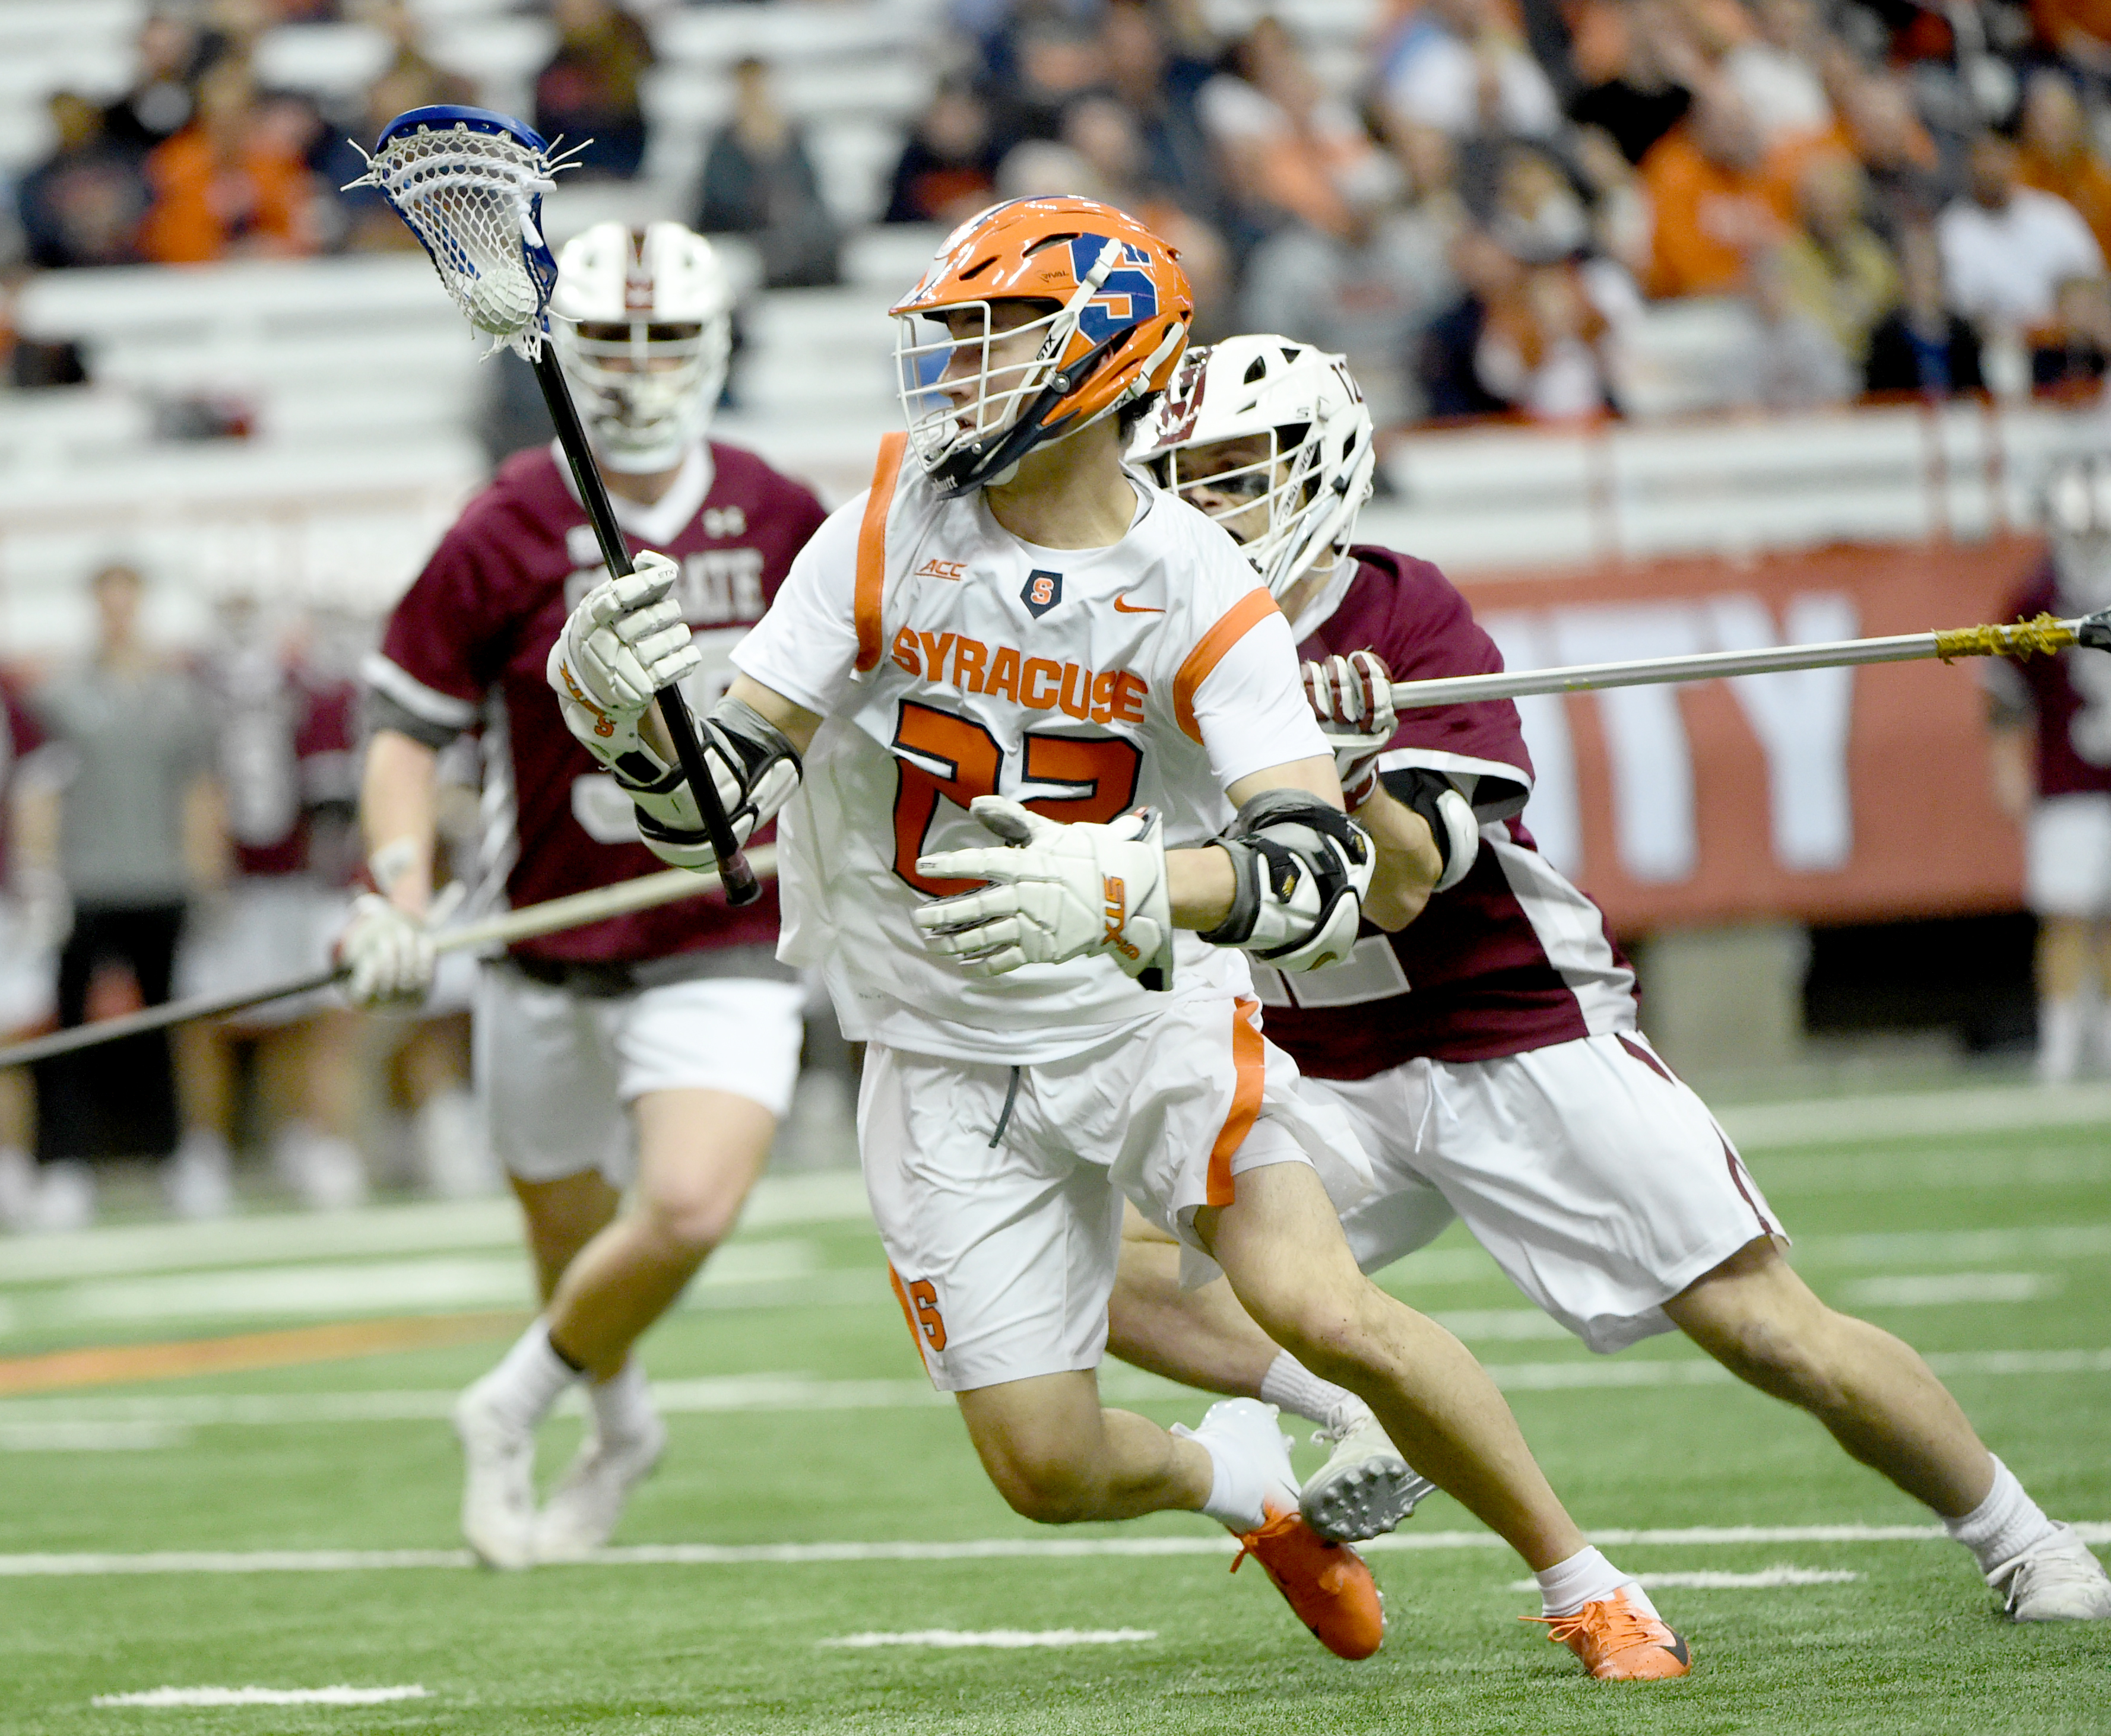 Ric Beardsley on debut of Syracuse lacrosse's Chase Scanlan: 'He's the new, shiny No. 22′